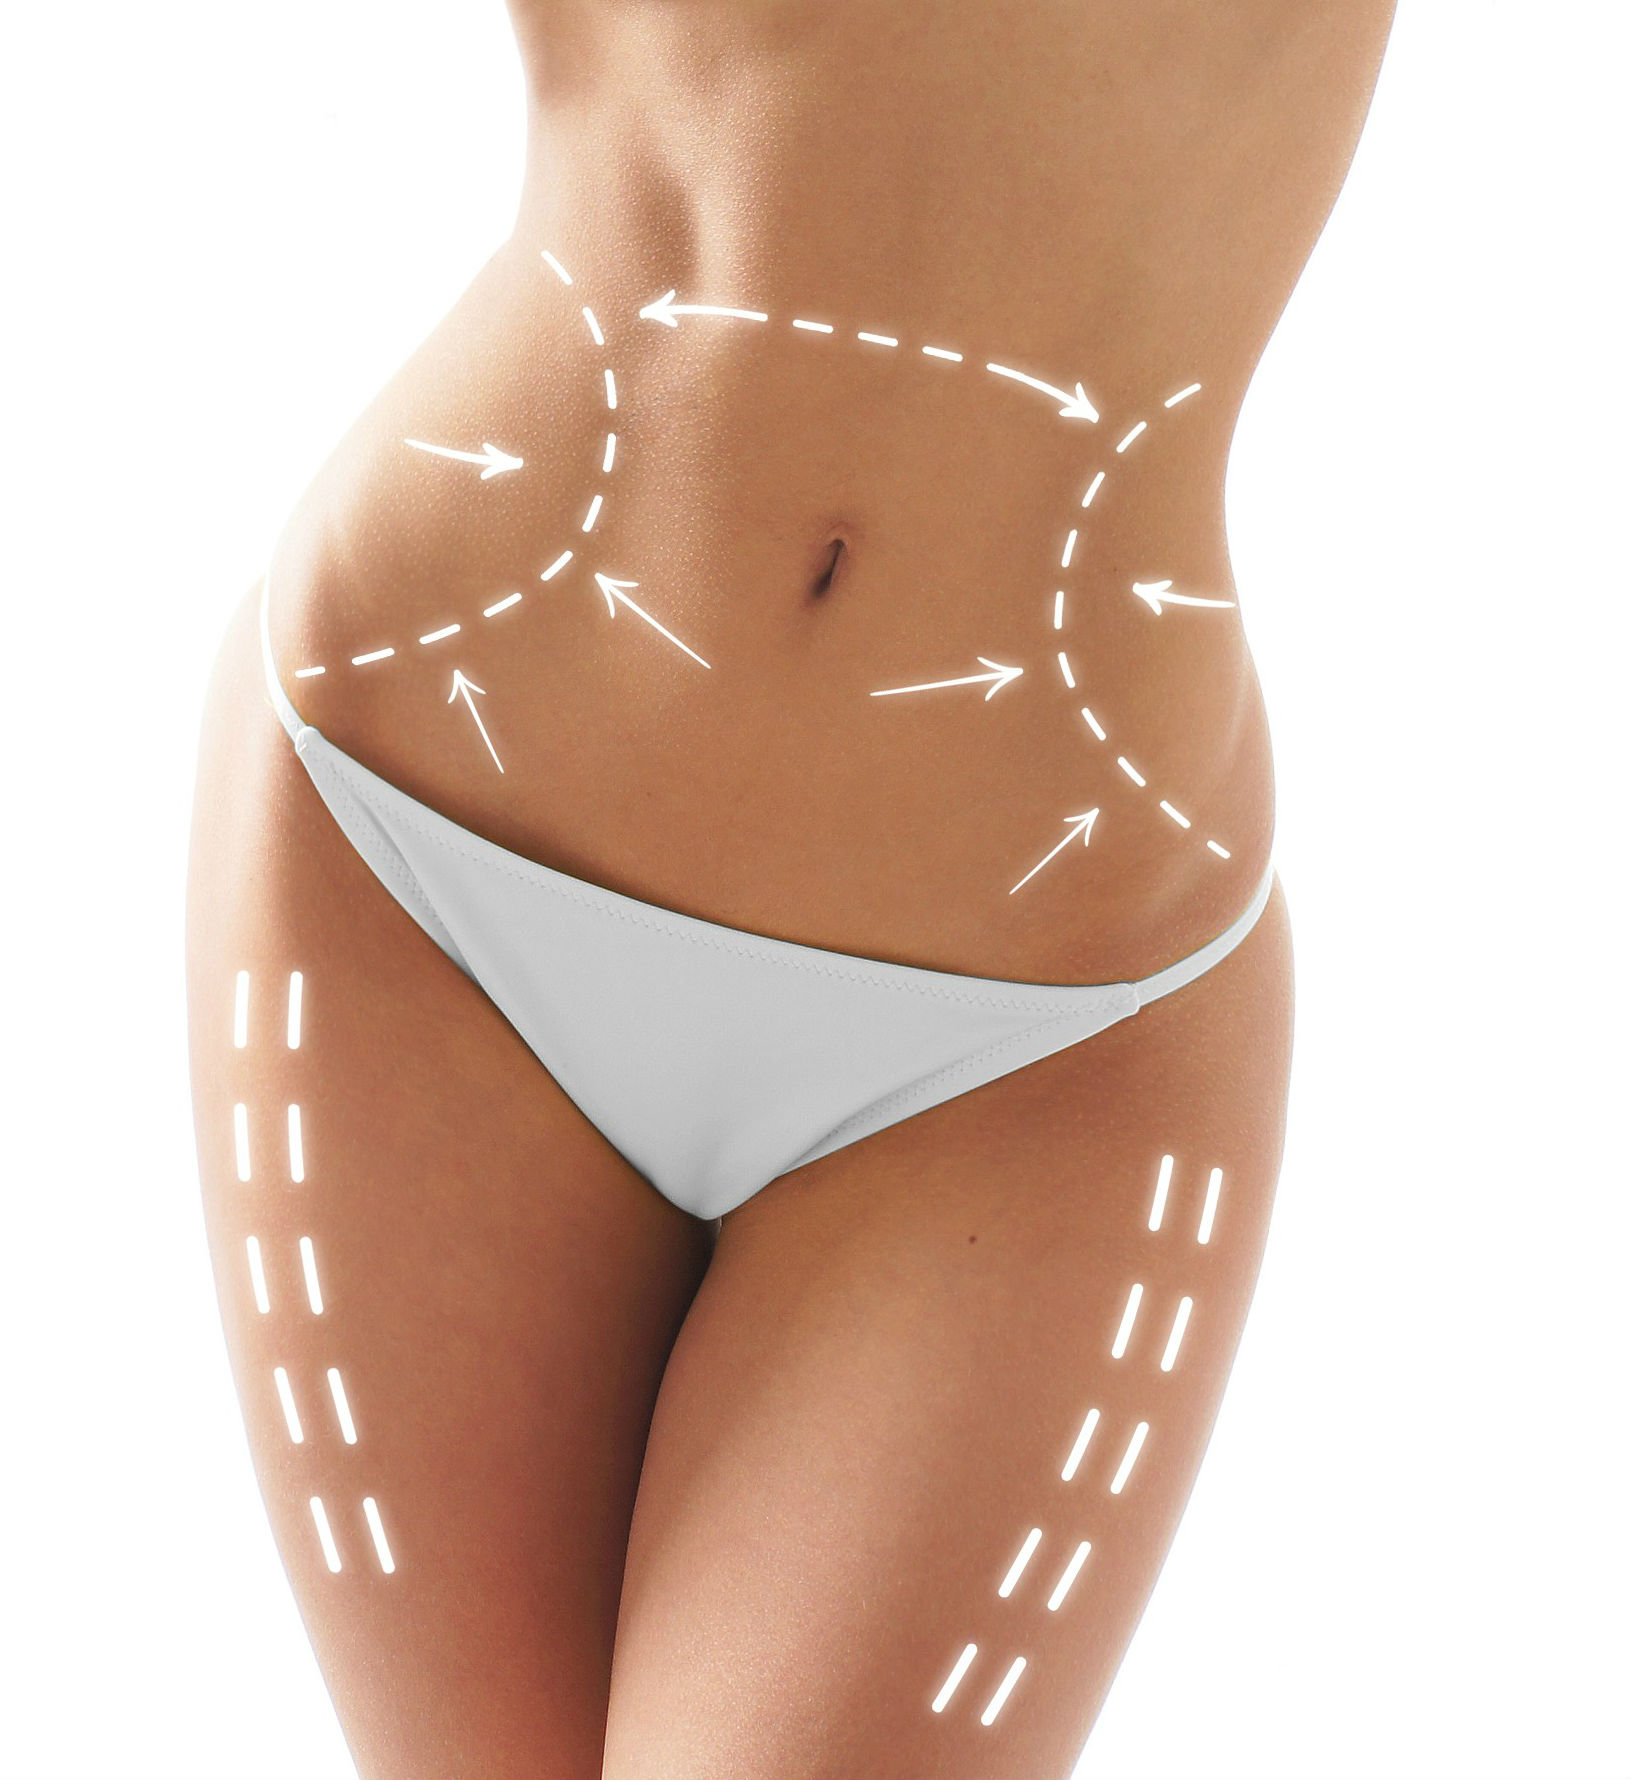 Woman in white bikini with markup showing where SculpSure will target fat.